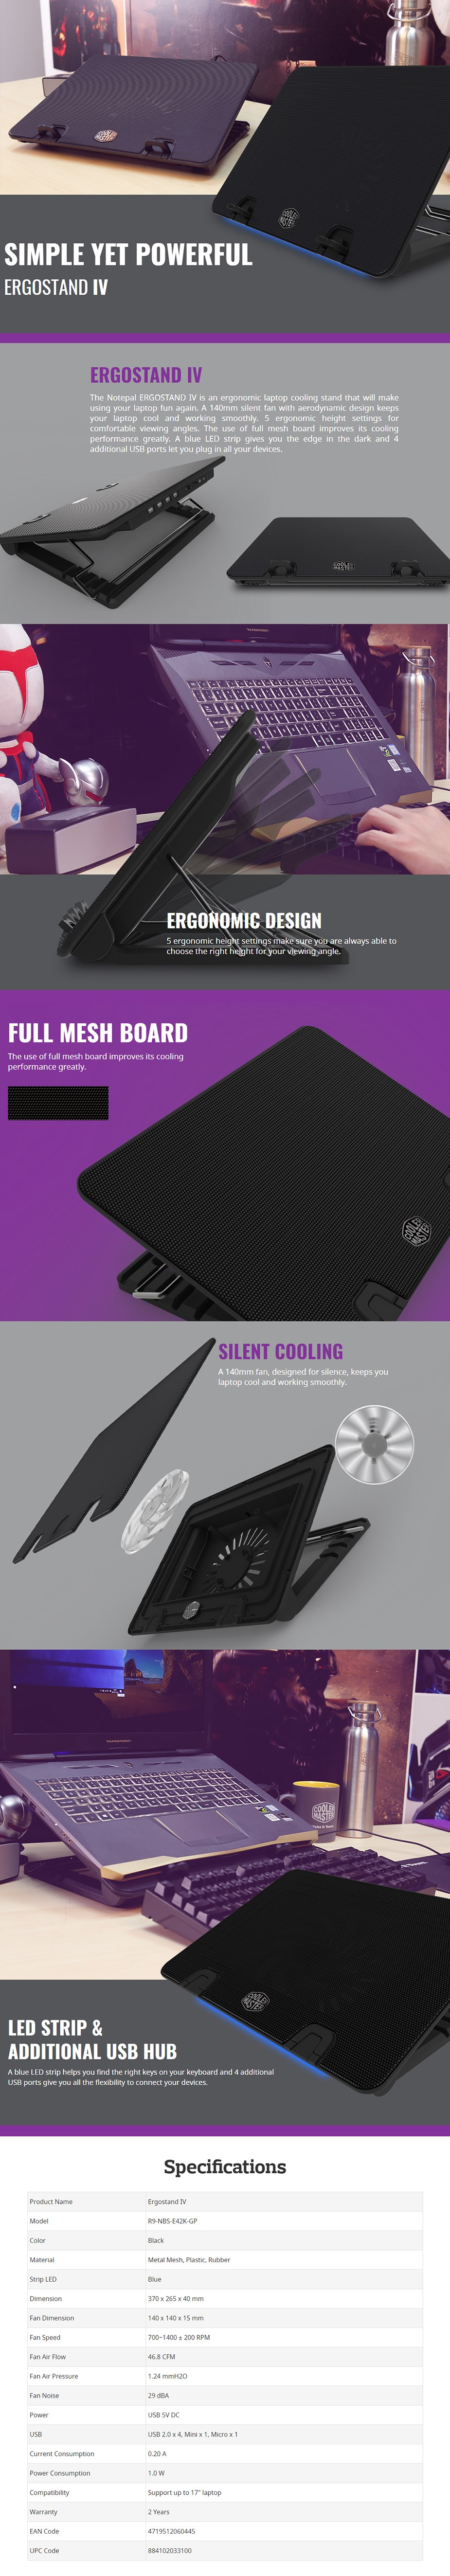 Cooler Master Ergostand IV Laptop Cooling Stand - Desktop Overview 1